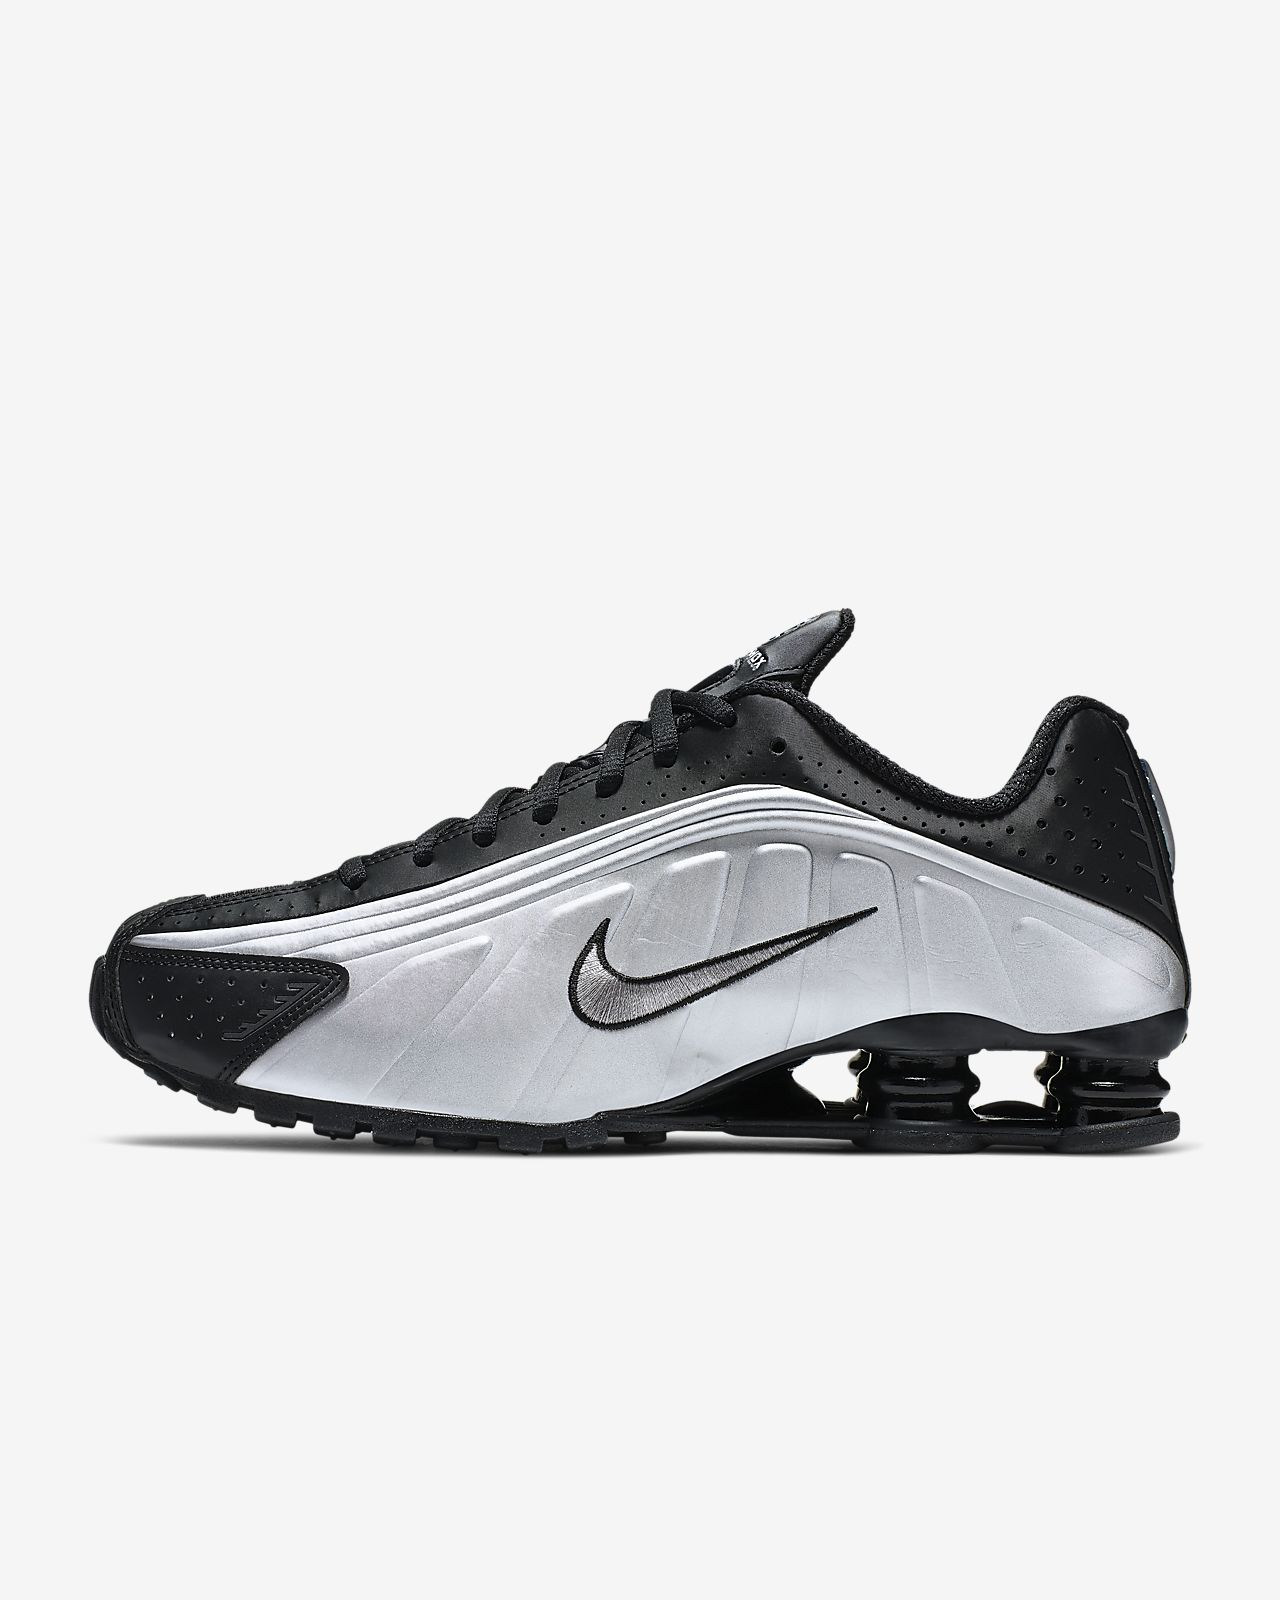 Advanced Design Nike Shox Deliver White Silver Black Mens Running Shoes Sneakers DC007927